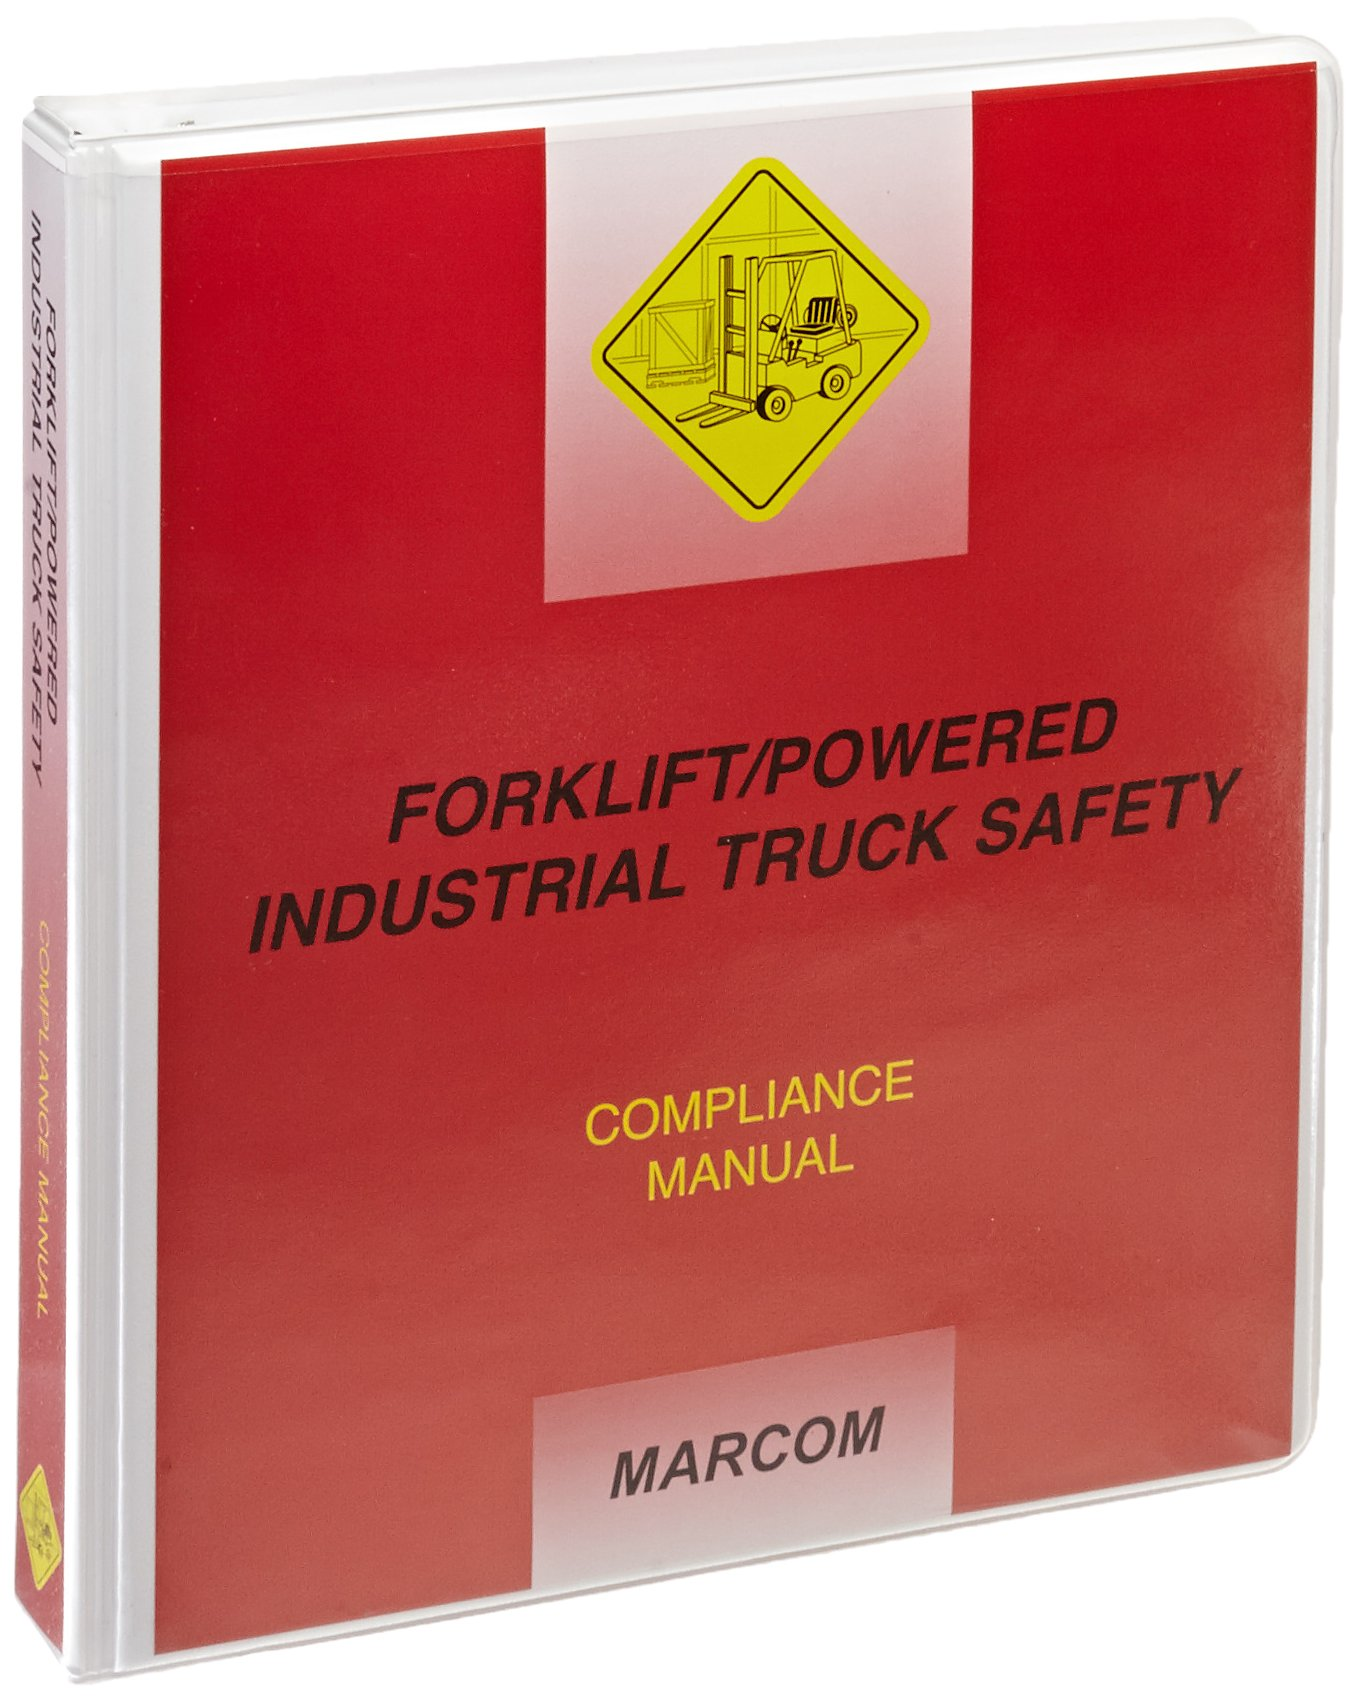 MARCOM Forklift/Powered Industrial Truck Safety Compliance Manual